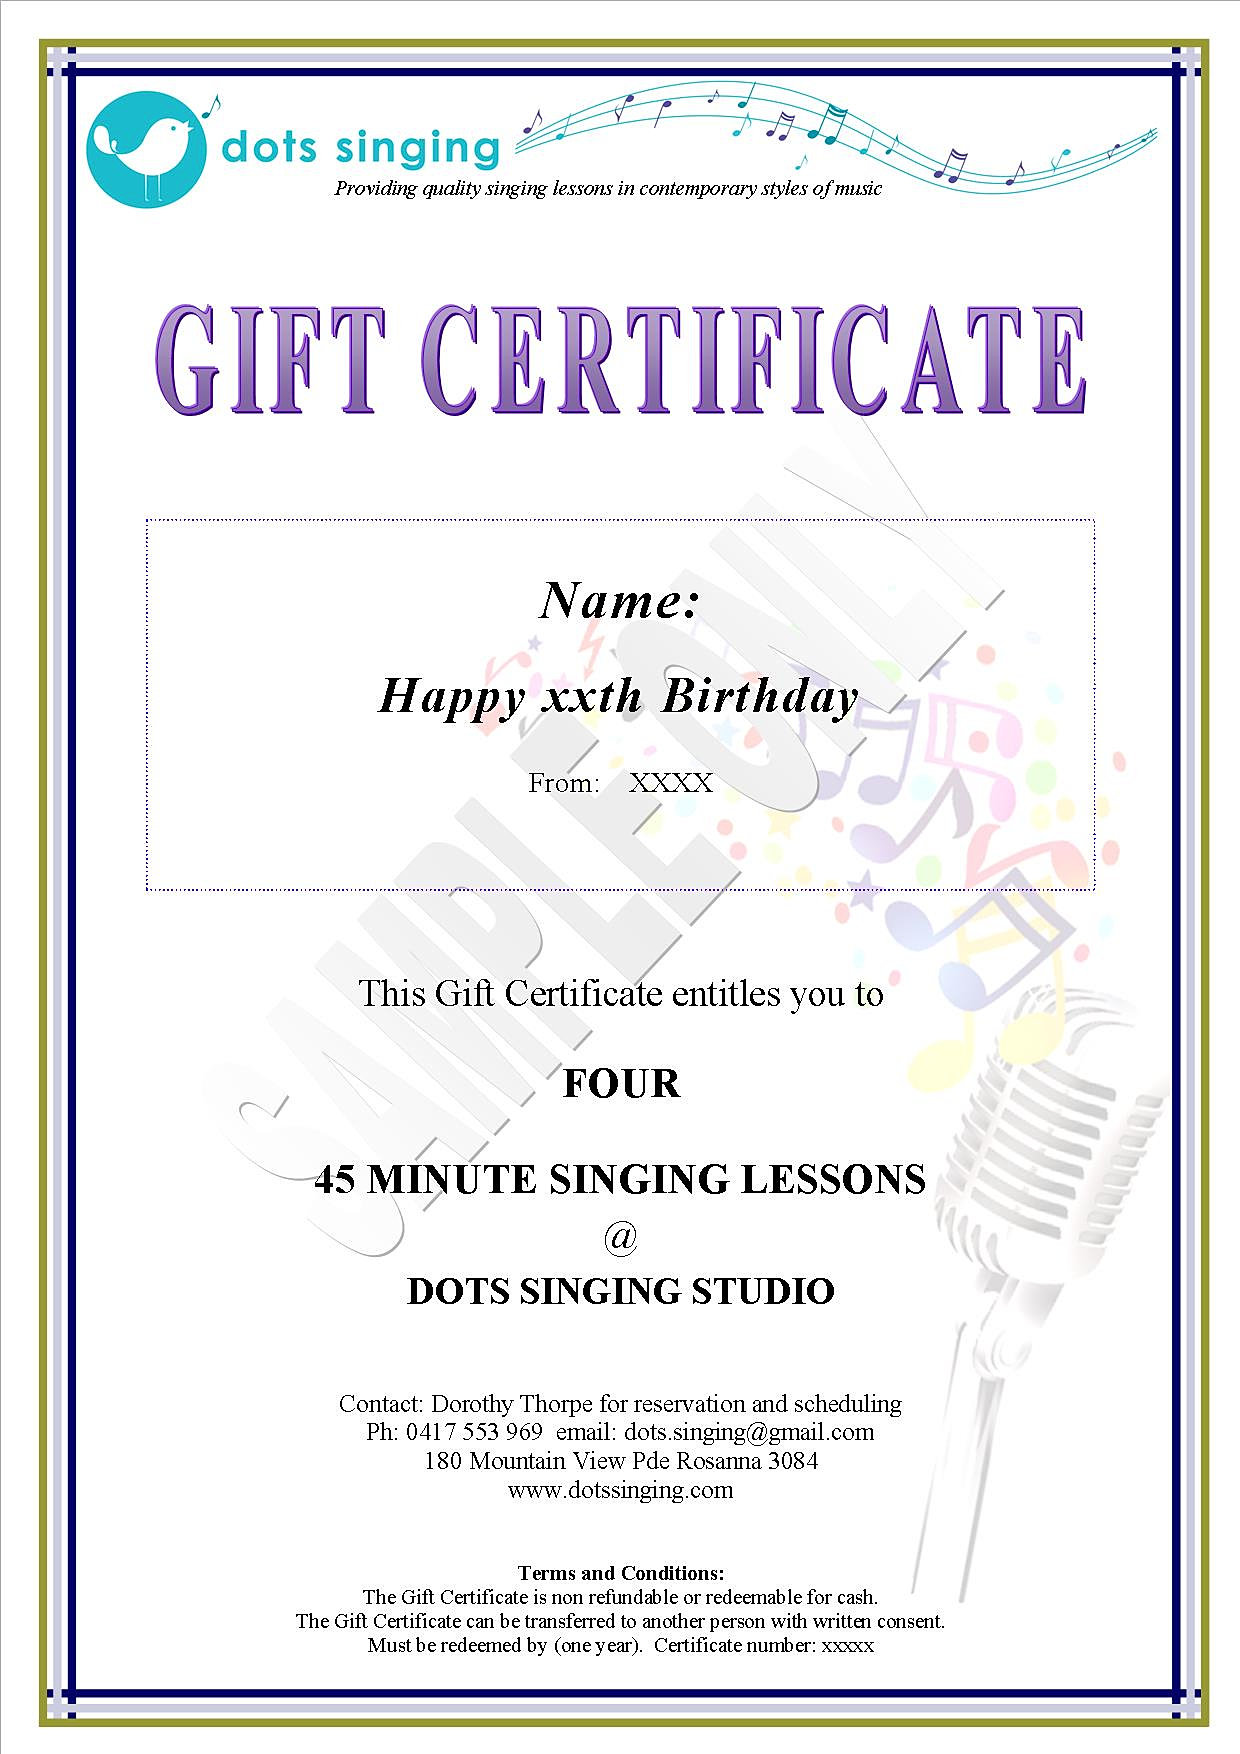 dots singing singing lessons rosanna melbourne gift dots singing singing lessons rosanna melbourne gift certificate sample dots singing